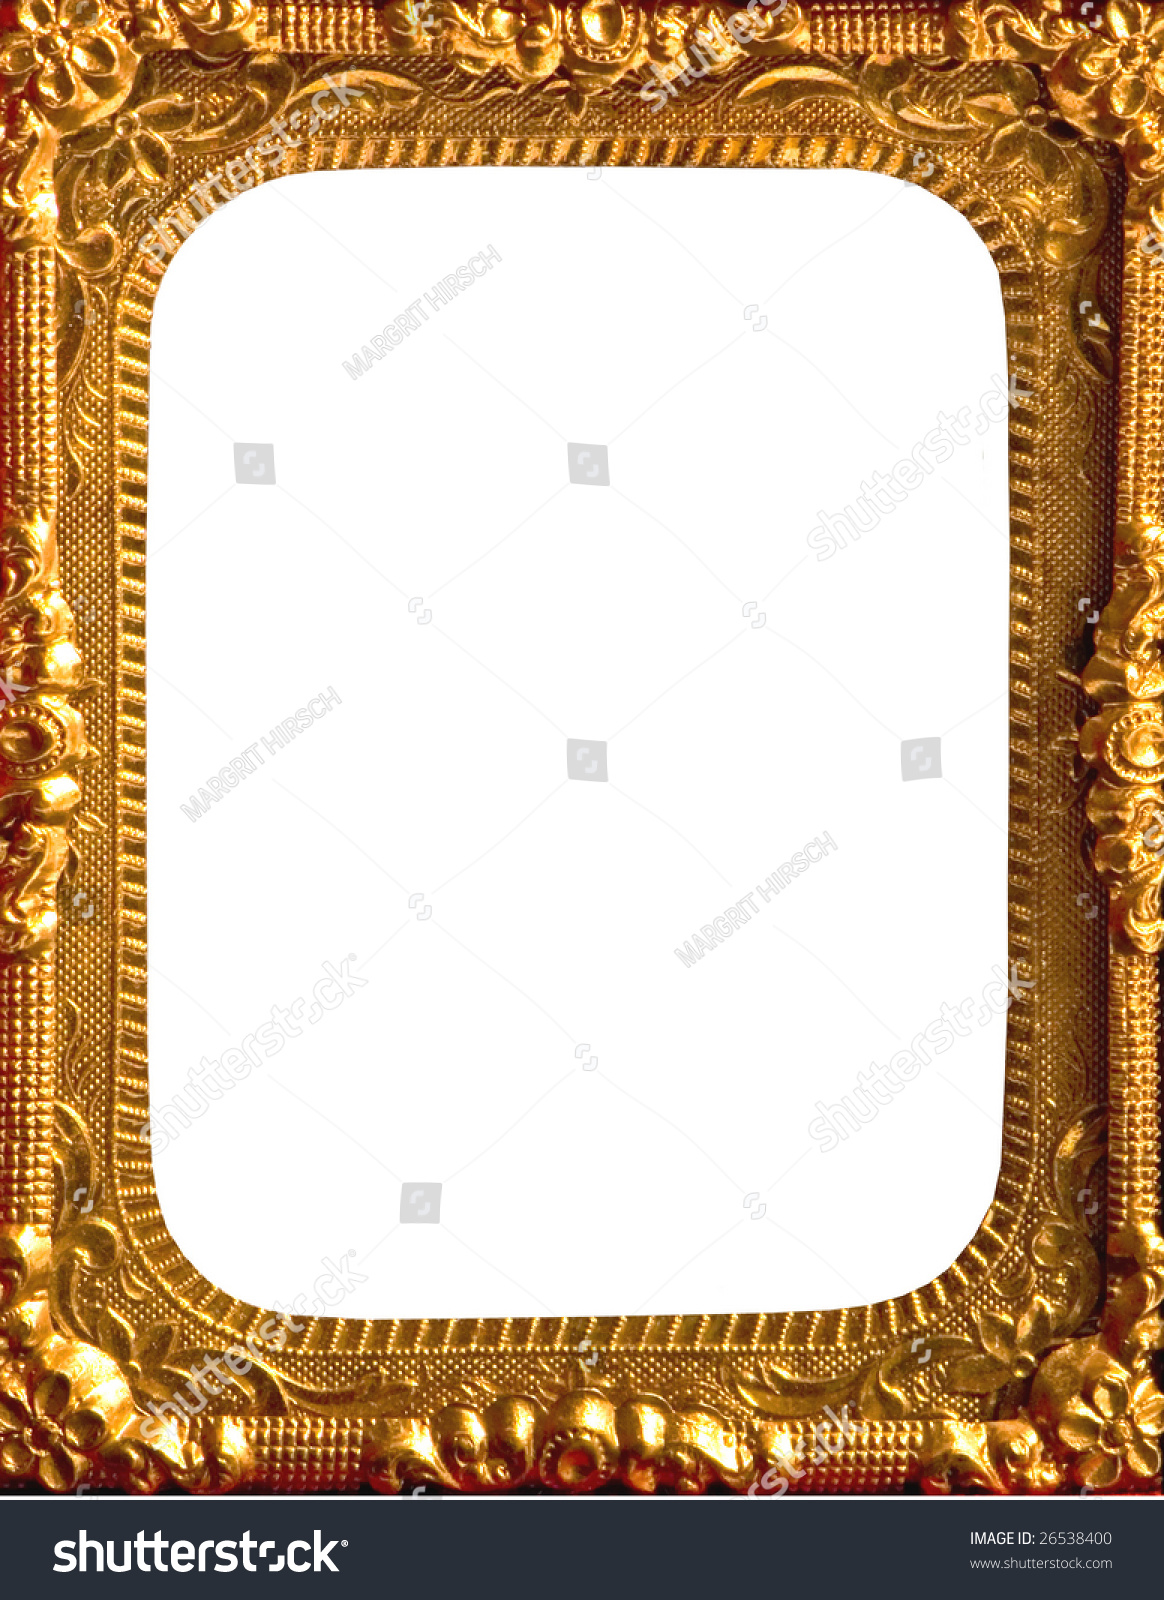 vintage ornate gold metal frame